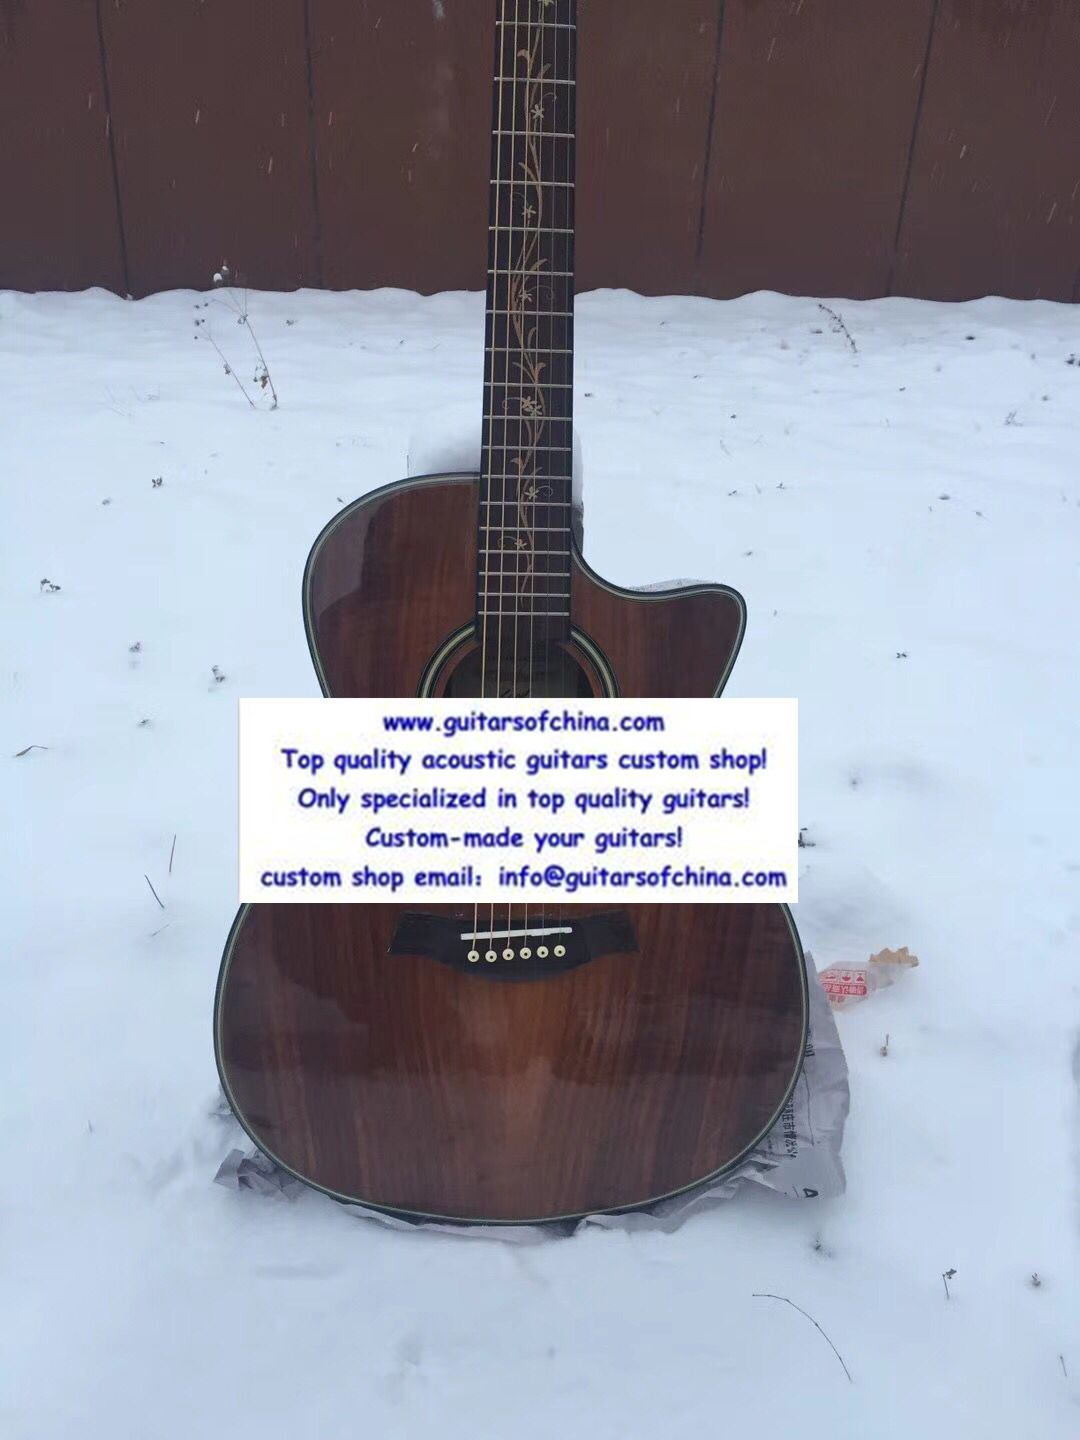 custom made chtaylor k24ce solid koa top acoustic guitar top quality guitar of china. Black Bedroom Furniture Sets. Home Design Ideas